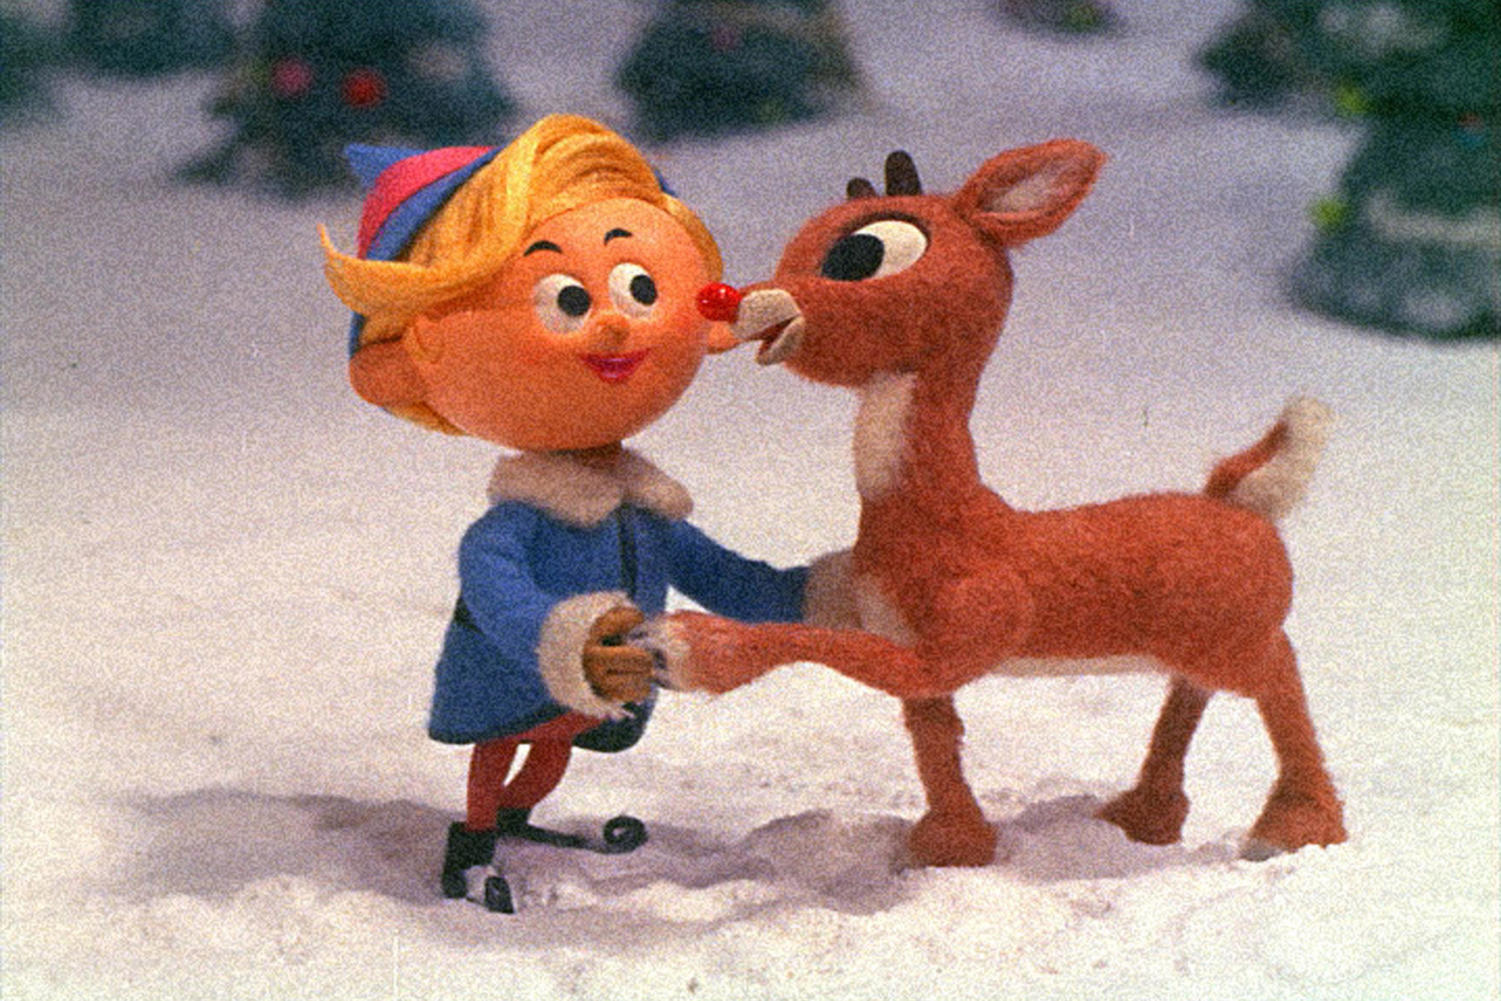 Let the reindeer games begin!  RUDOLPH THE RED-NOSED REINDEER, the longest-running holiday special in television history, will be broadcast Tuesday Nov. 27 (8:00-9:00 PM, ET/PT) on the CBS Television Network. Since 1964, millions of families have tuned in to watch Rudolph and his friends, Hermey the Elf, Yukon Cornelius, and the Misfit Toys, save Christmas.  This classic